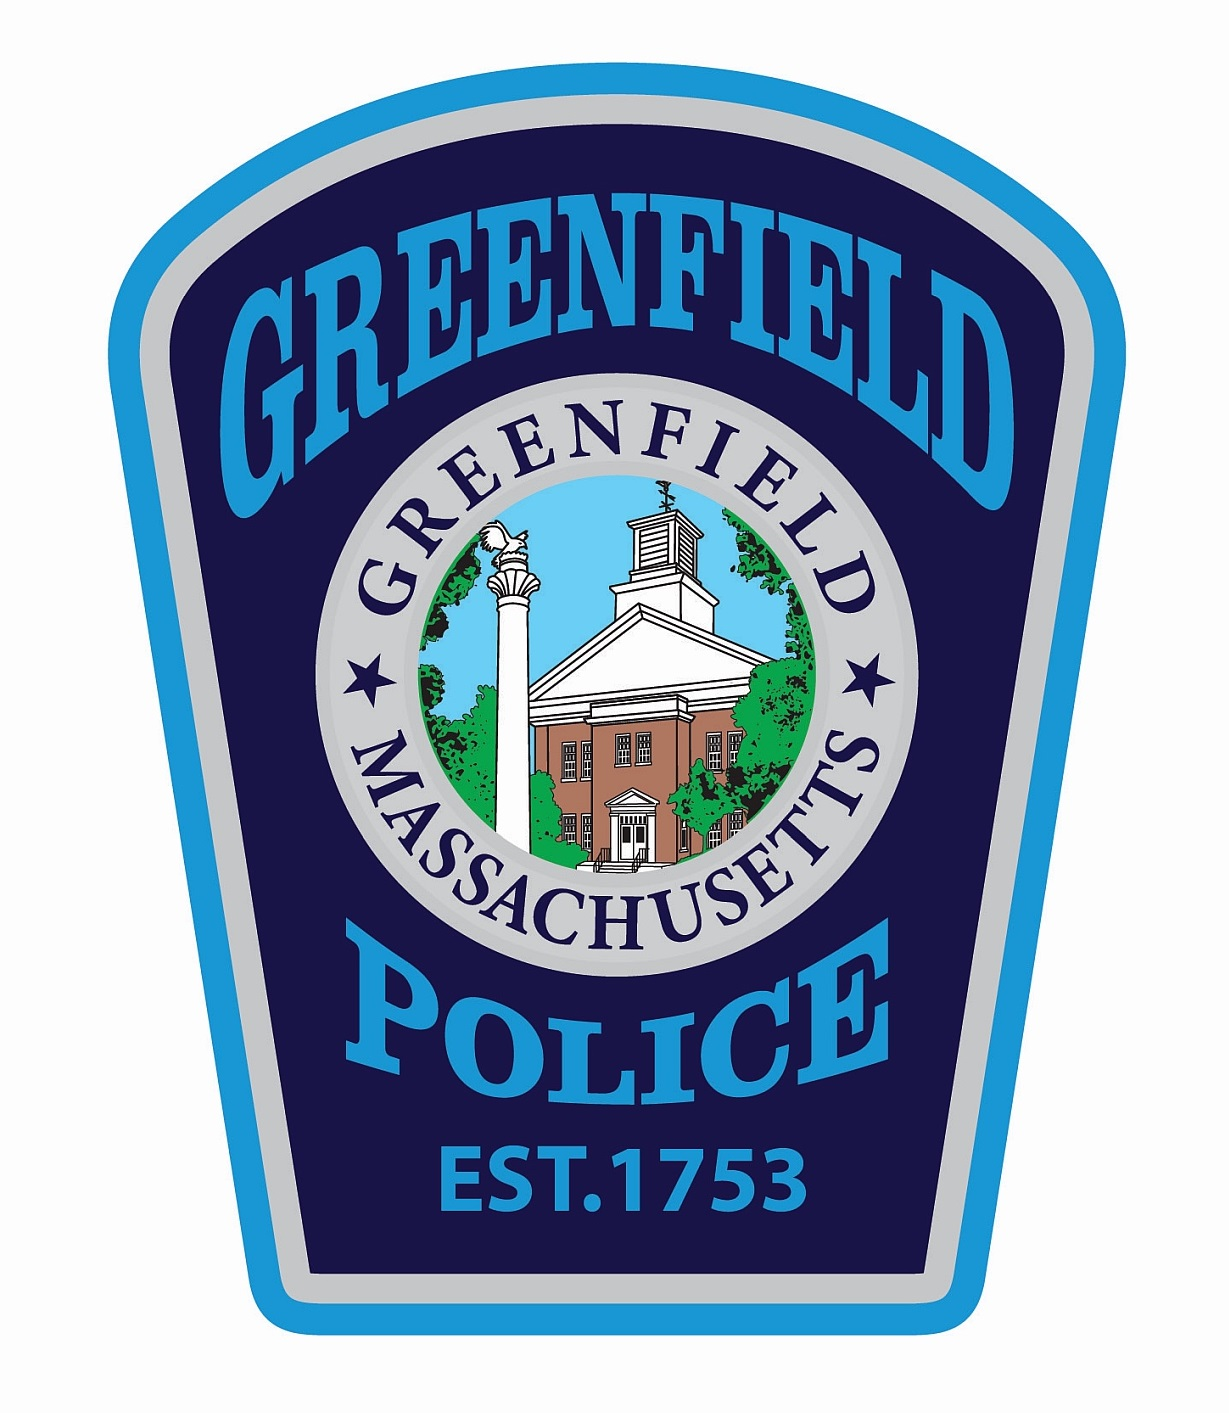 Greenfield Police Department, MA Police Jobs